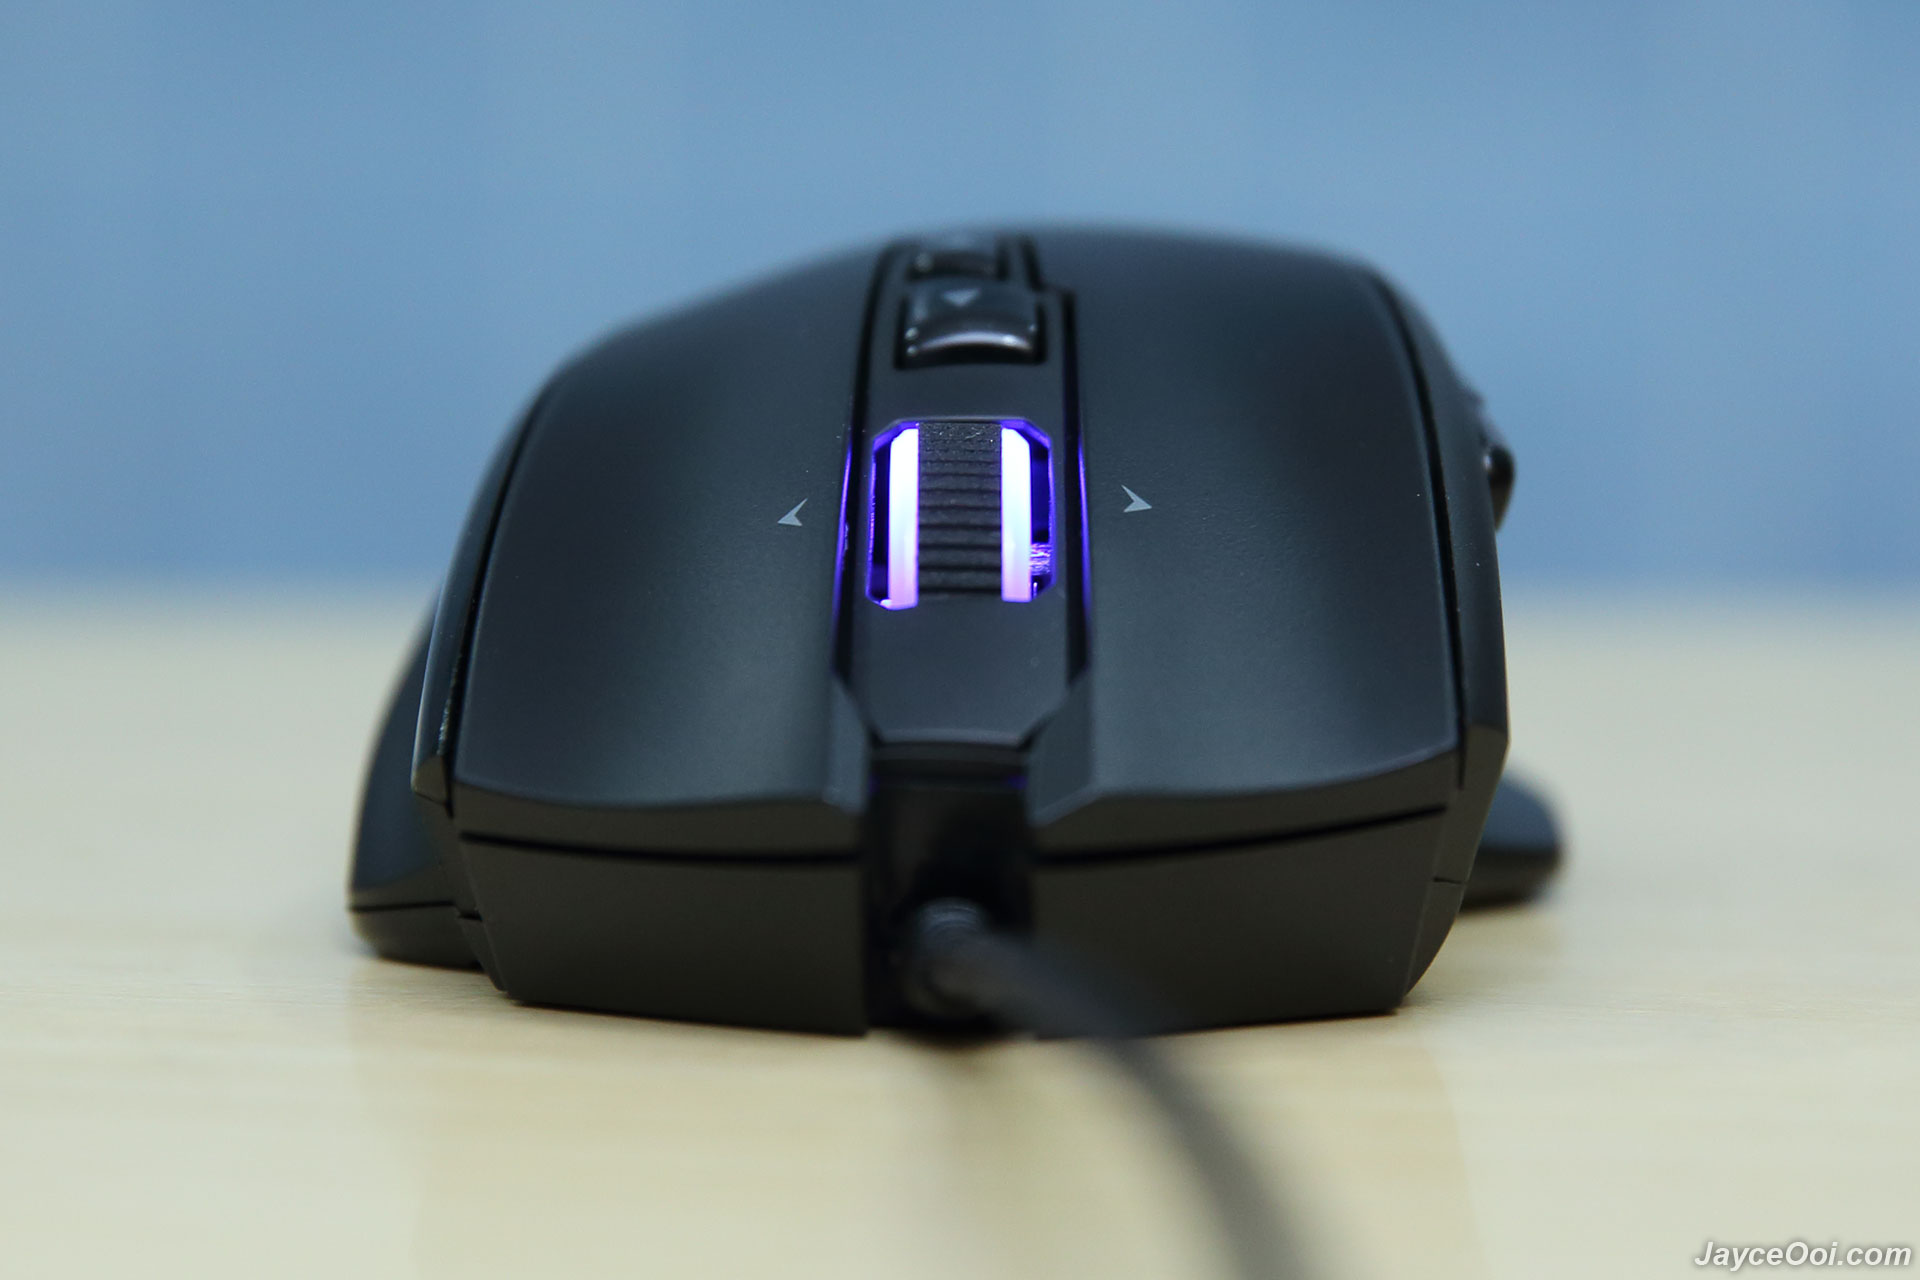 Havit Hv Ms735 Mmo Gaming Mouse Review Jayceooi Com